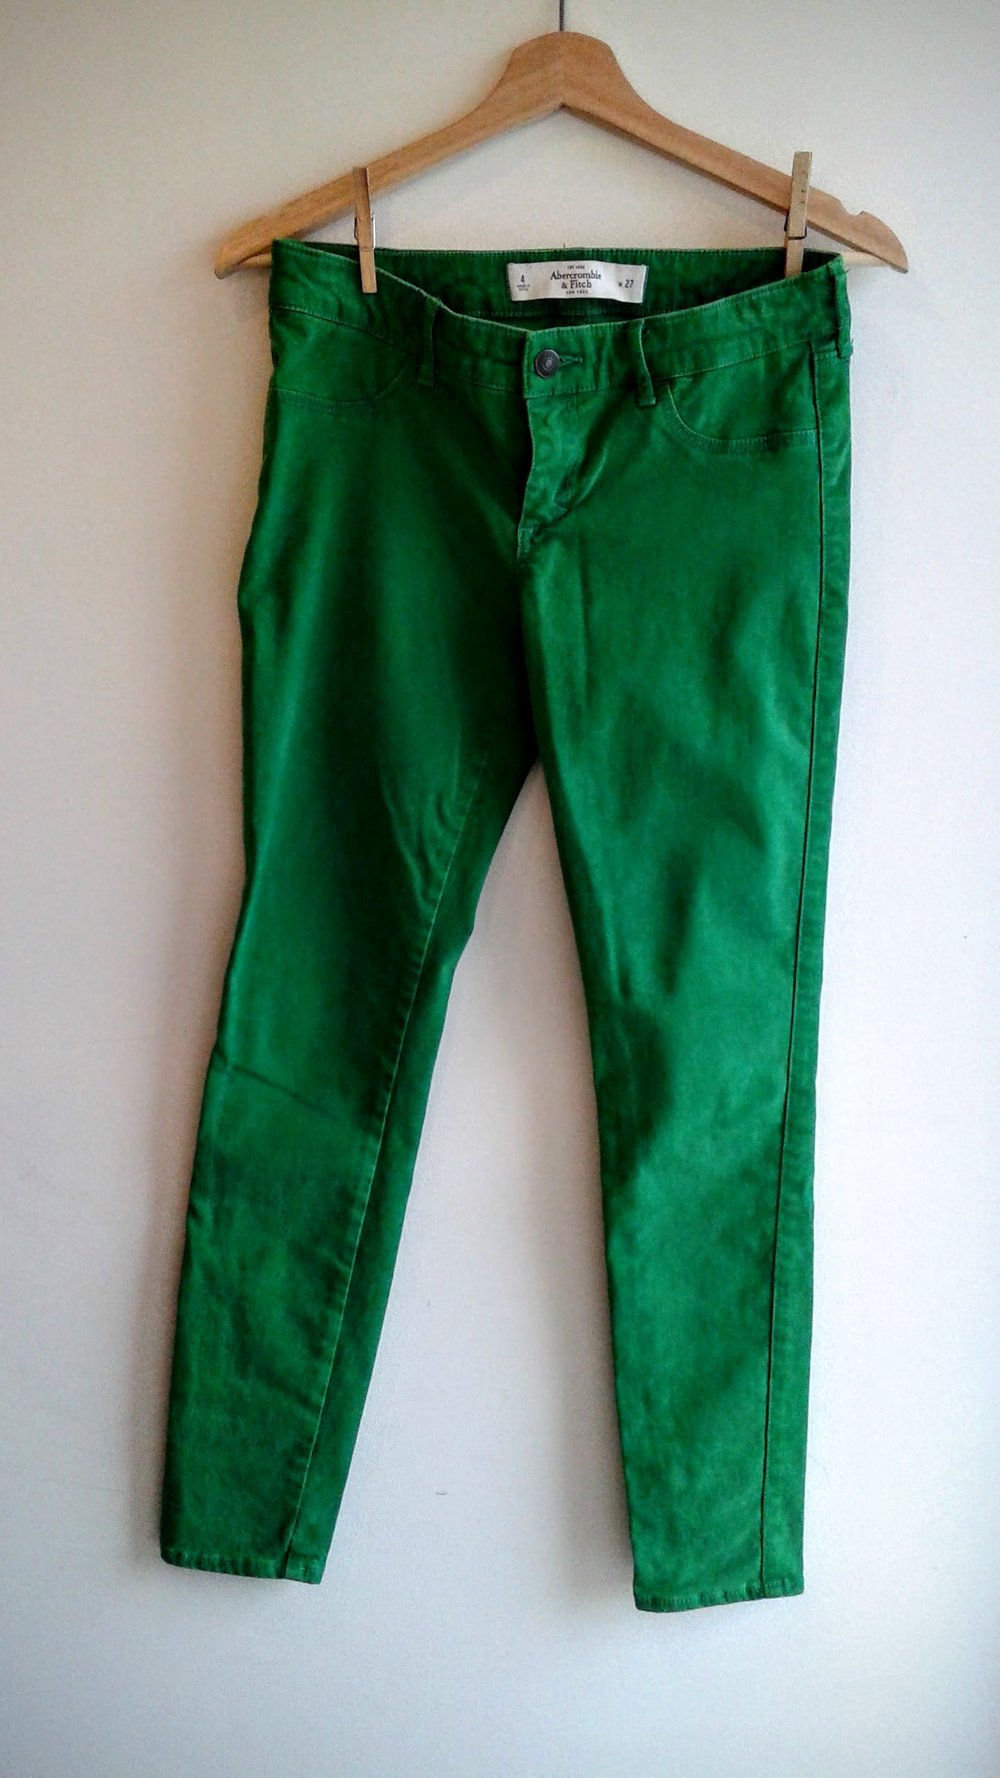 Abercrombie&Fitch pants; S27, $30